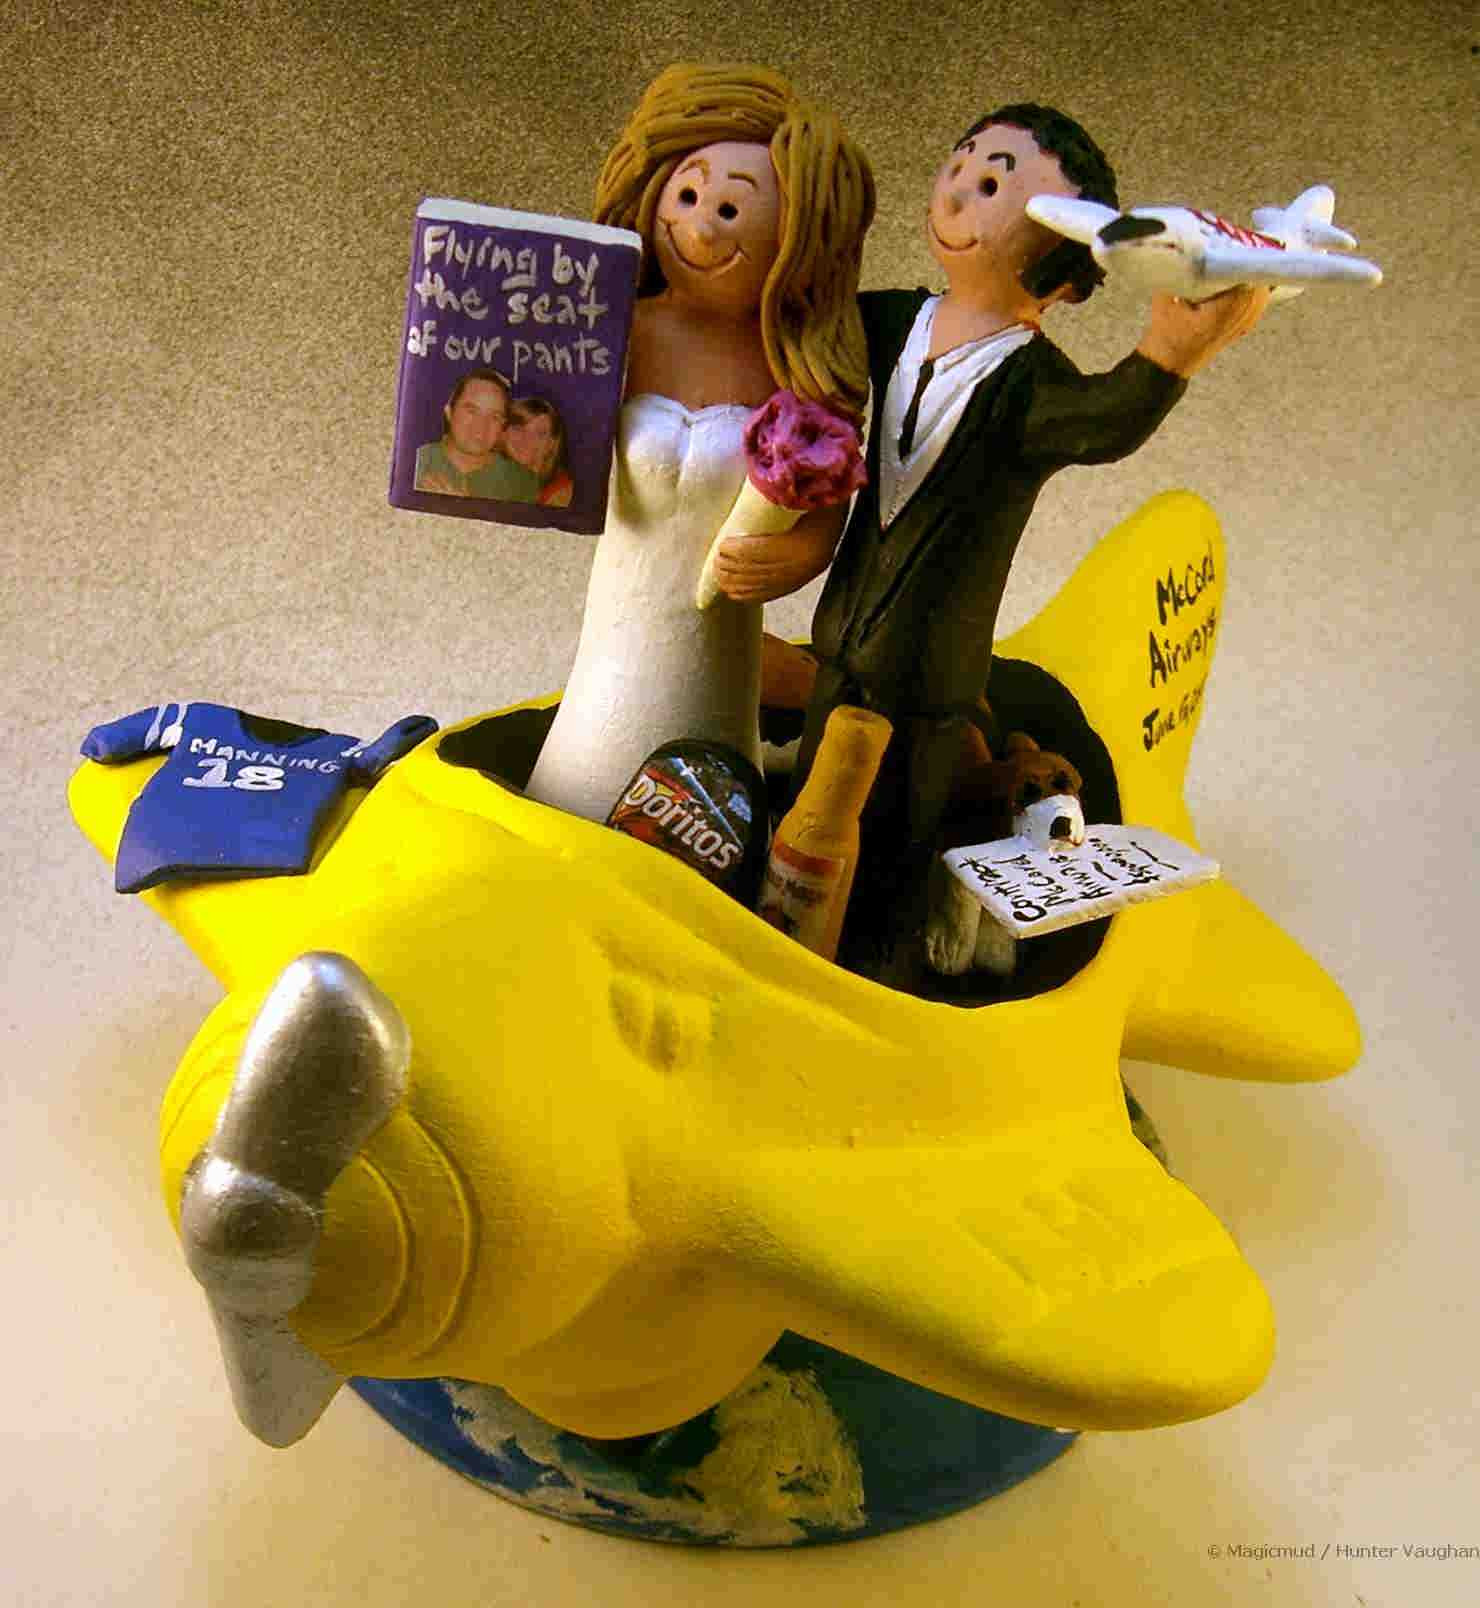 Plane Wedding Cakes  wedding cake toppers Cheap Cake Toppers For Wedding Cakes